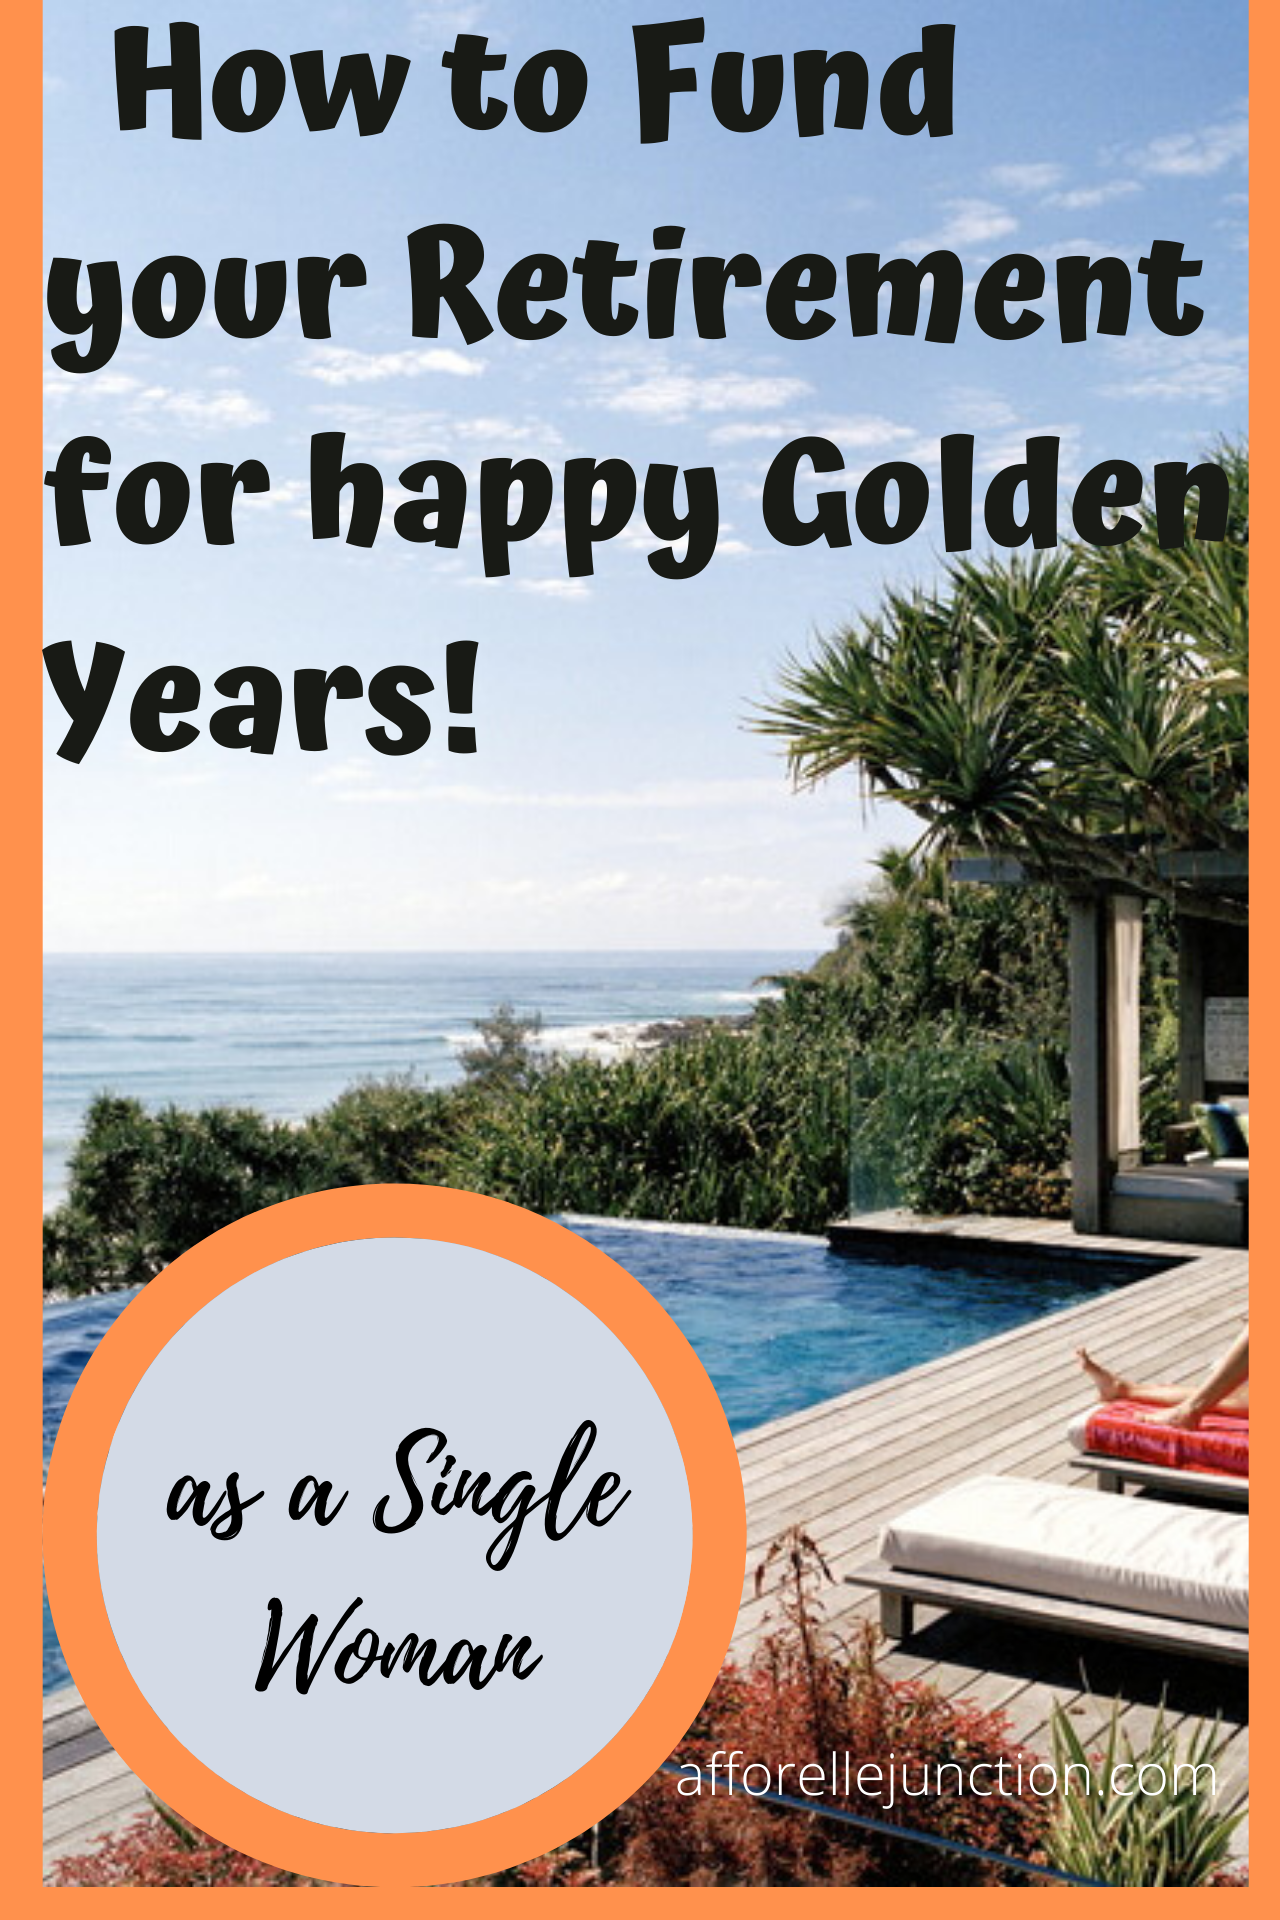 How to Fund Your Retirement for Happy Golden Years in 2020